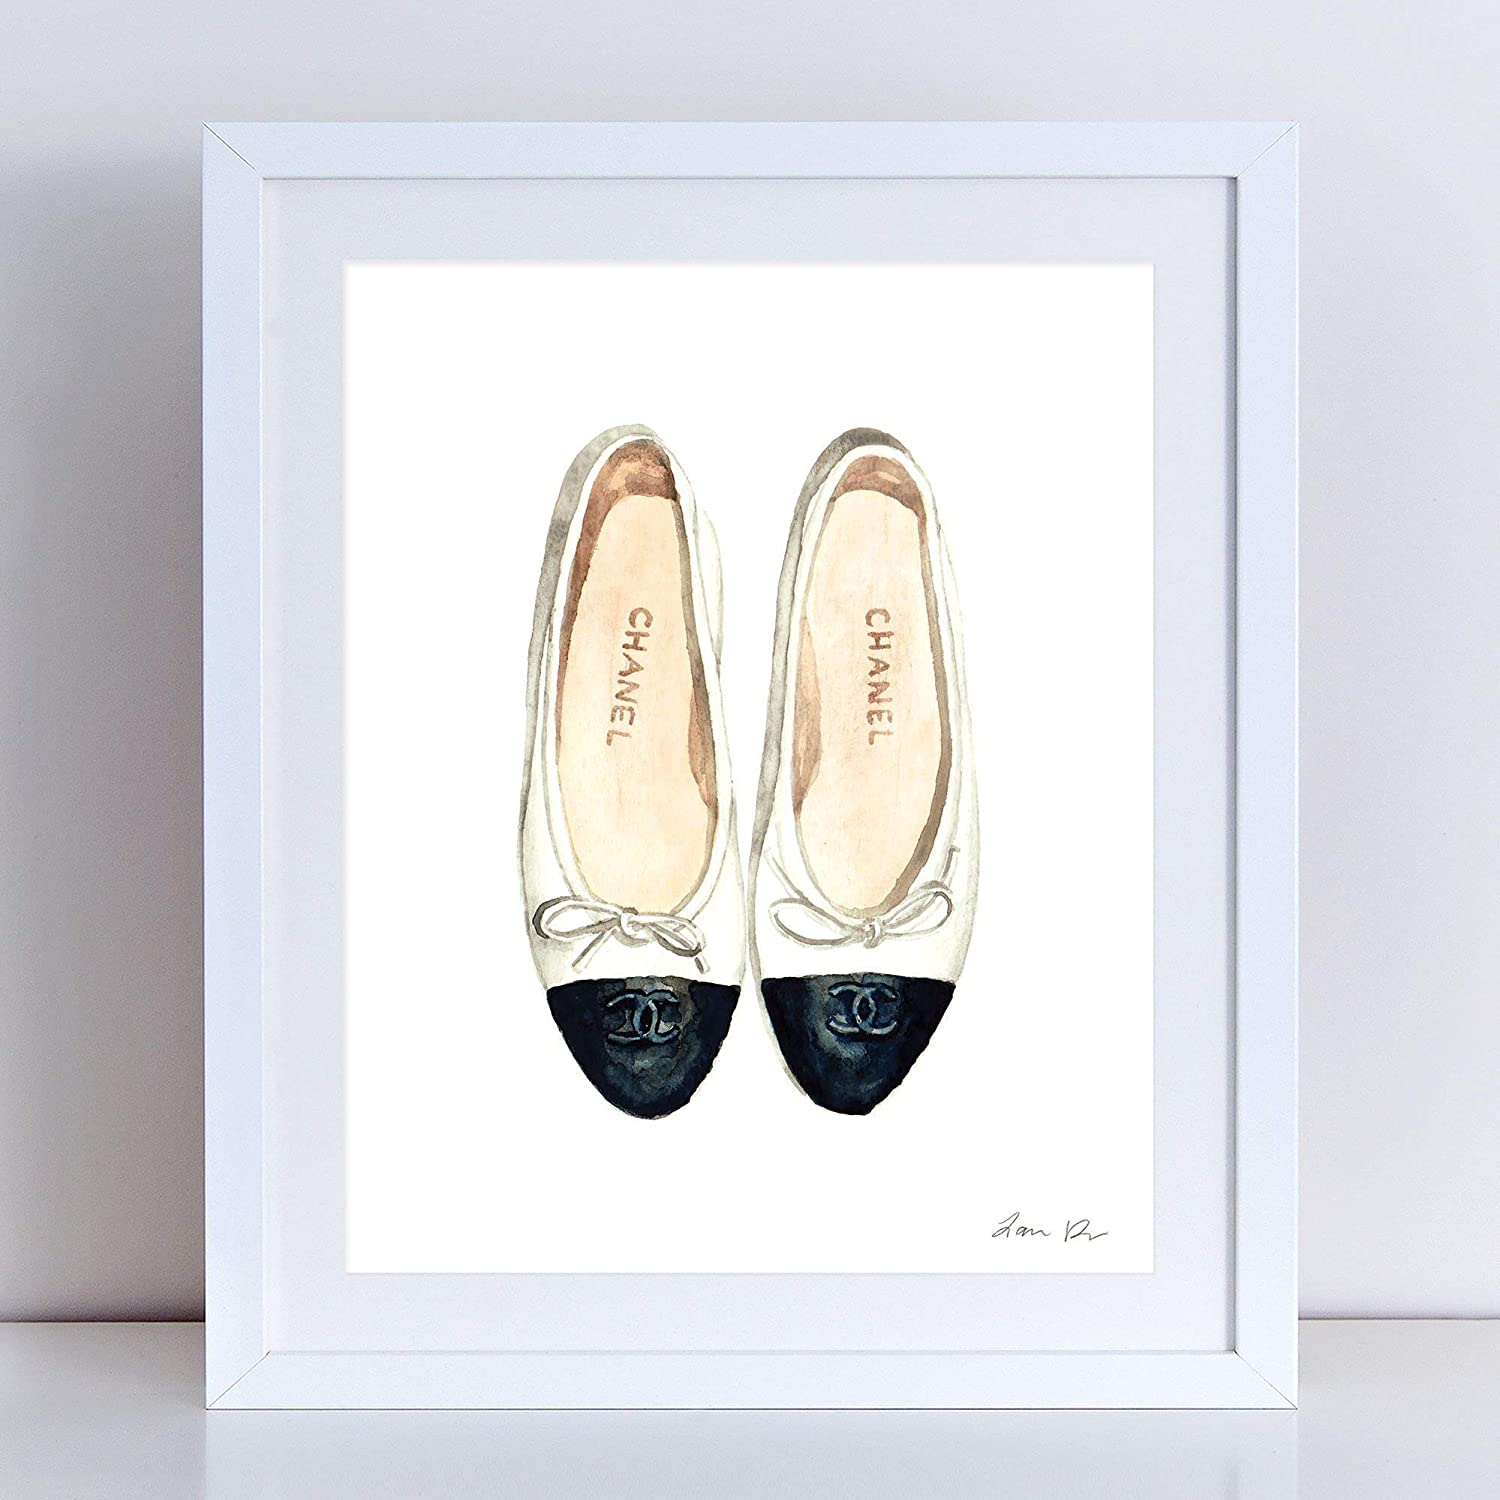 ffb5bd3a71306 Chanel Ballet Flats Art Print Watercolor Painting Wall Home Decor Chanel  Shoes Coco Chanel Quotes Fashion Illustration Vogue Designer Classic Chic  Preppy ...